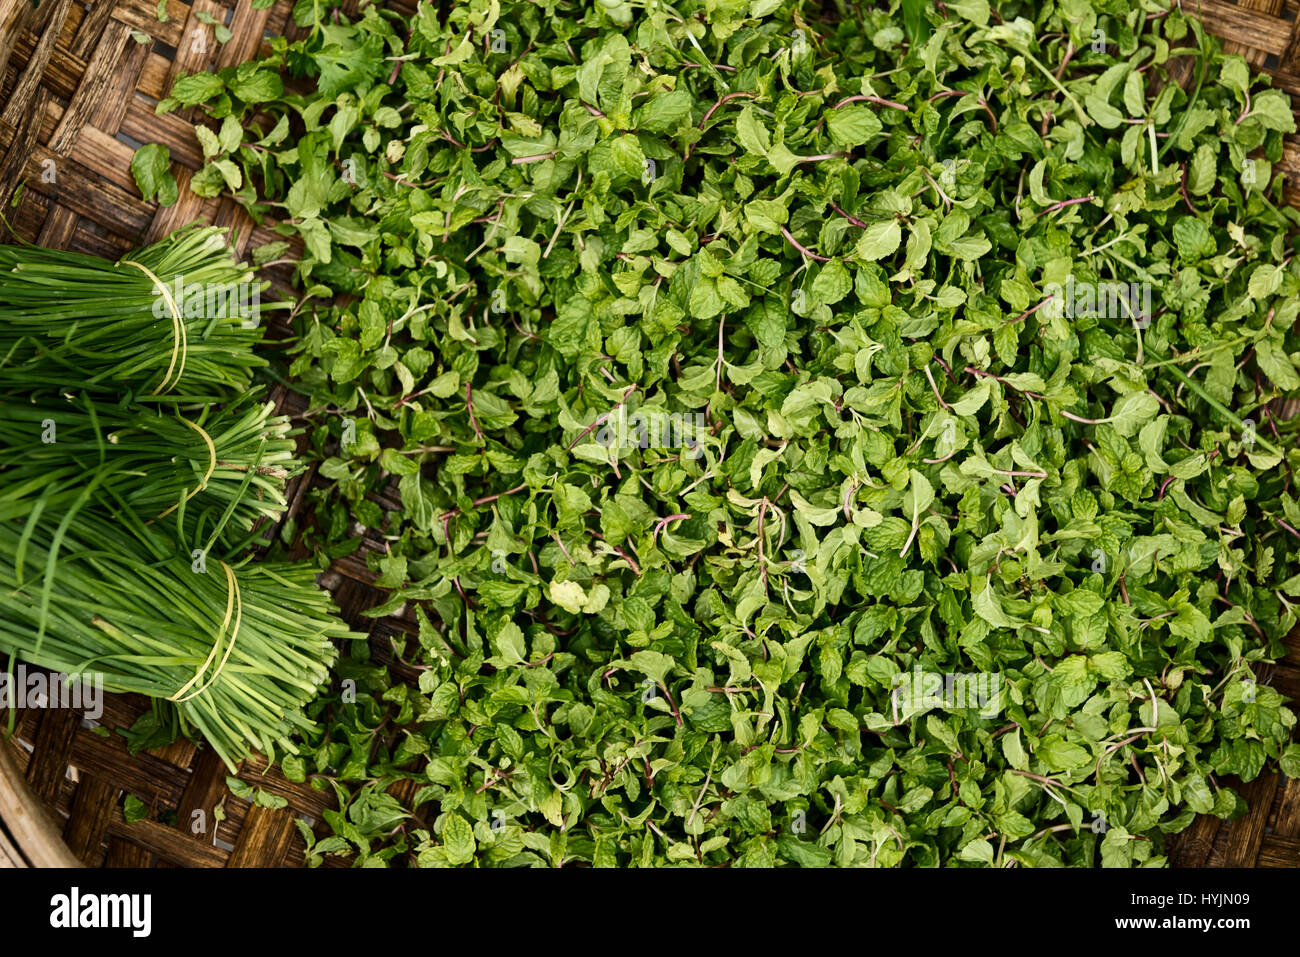 Basket of Thai basil or Vietnamese basil and chives - Stock Image